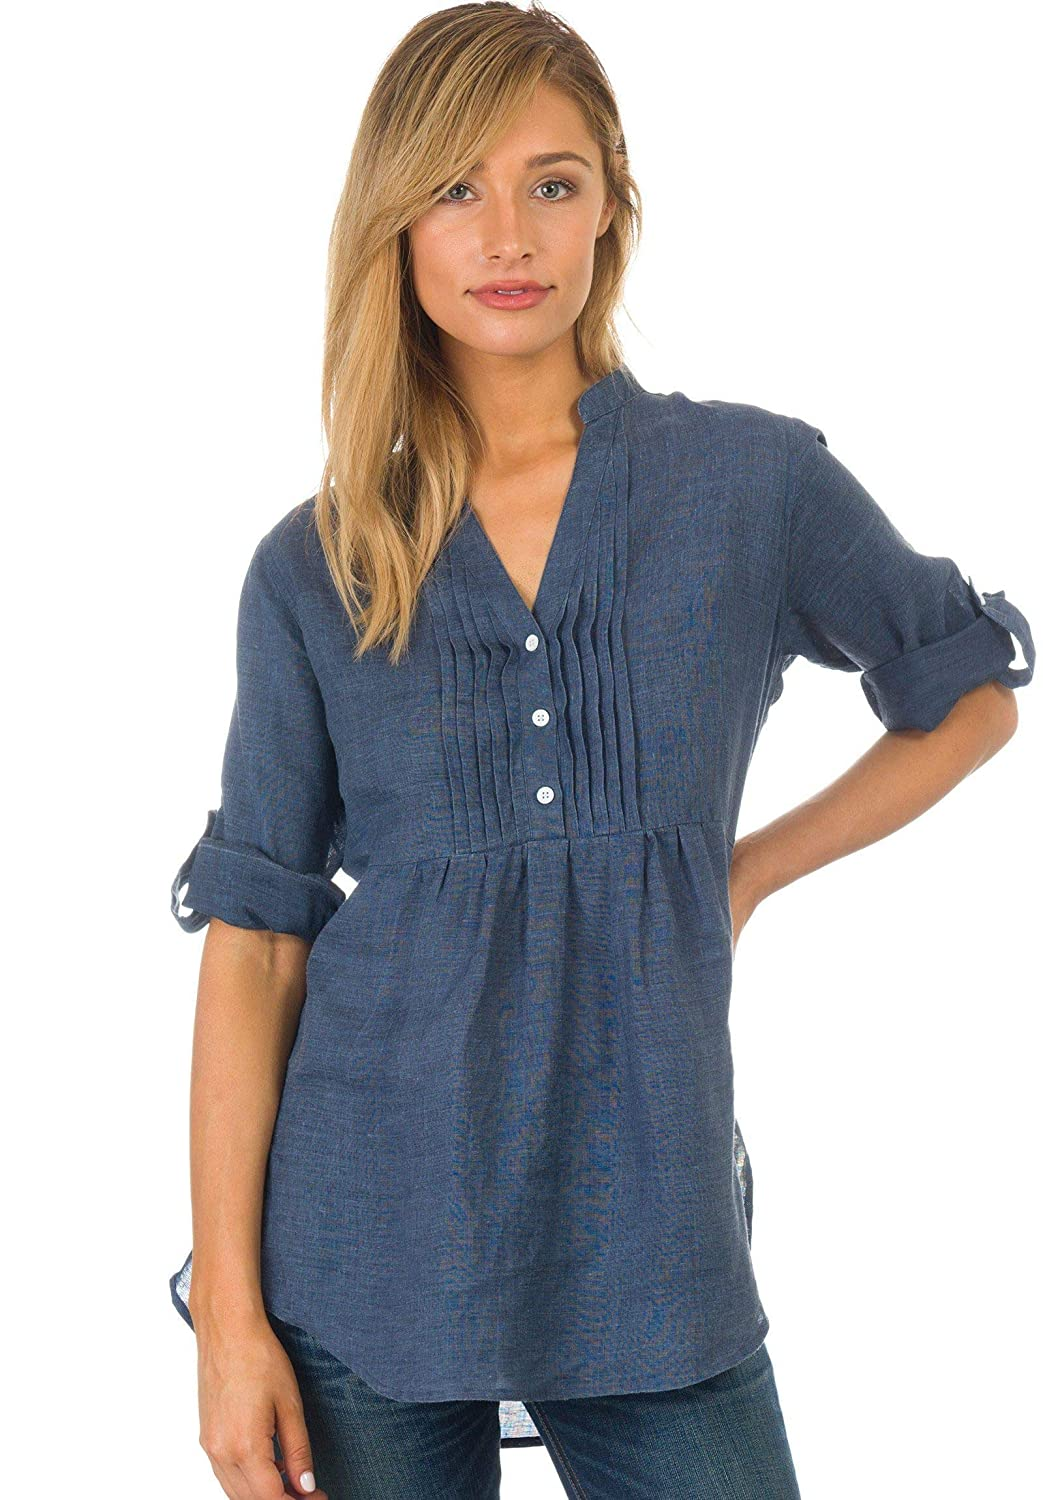 CAMIXA Womens Linen Popover Casual Chic Tunic Shirt Relaxed Blouse Top